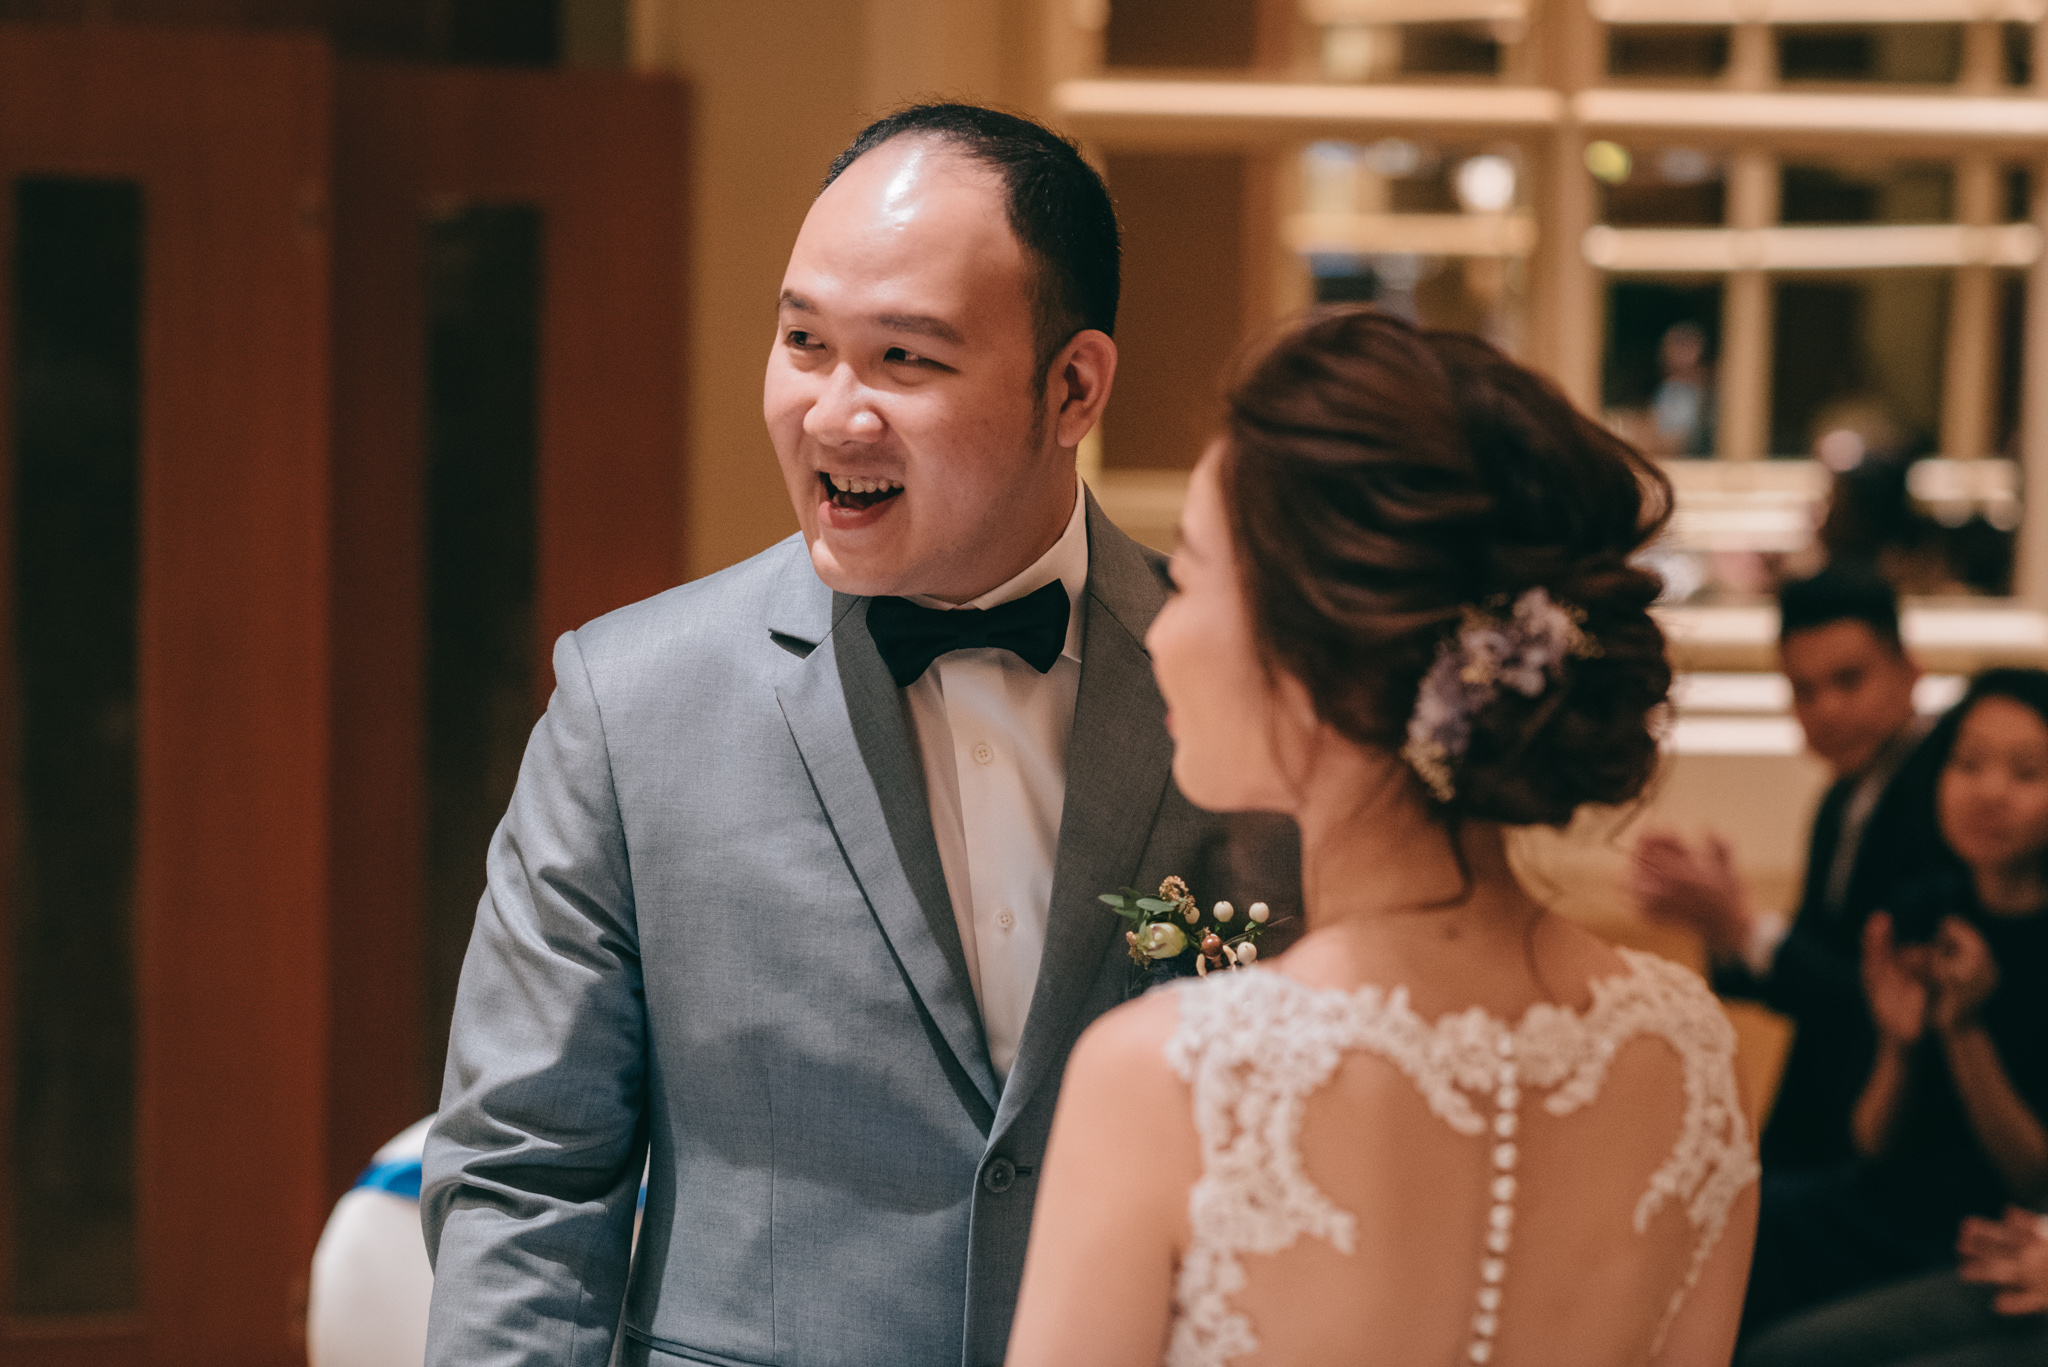 Eunice & Winshire Wedding Day Highlights (resized for sharing) - 142.jpg